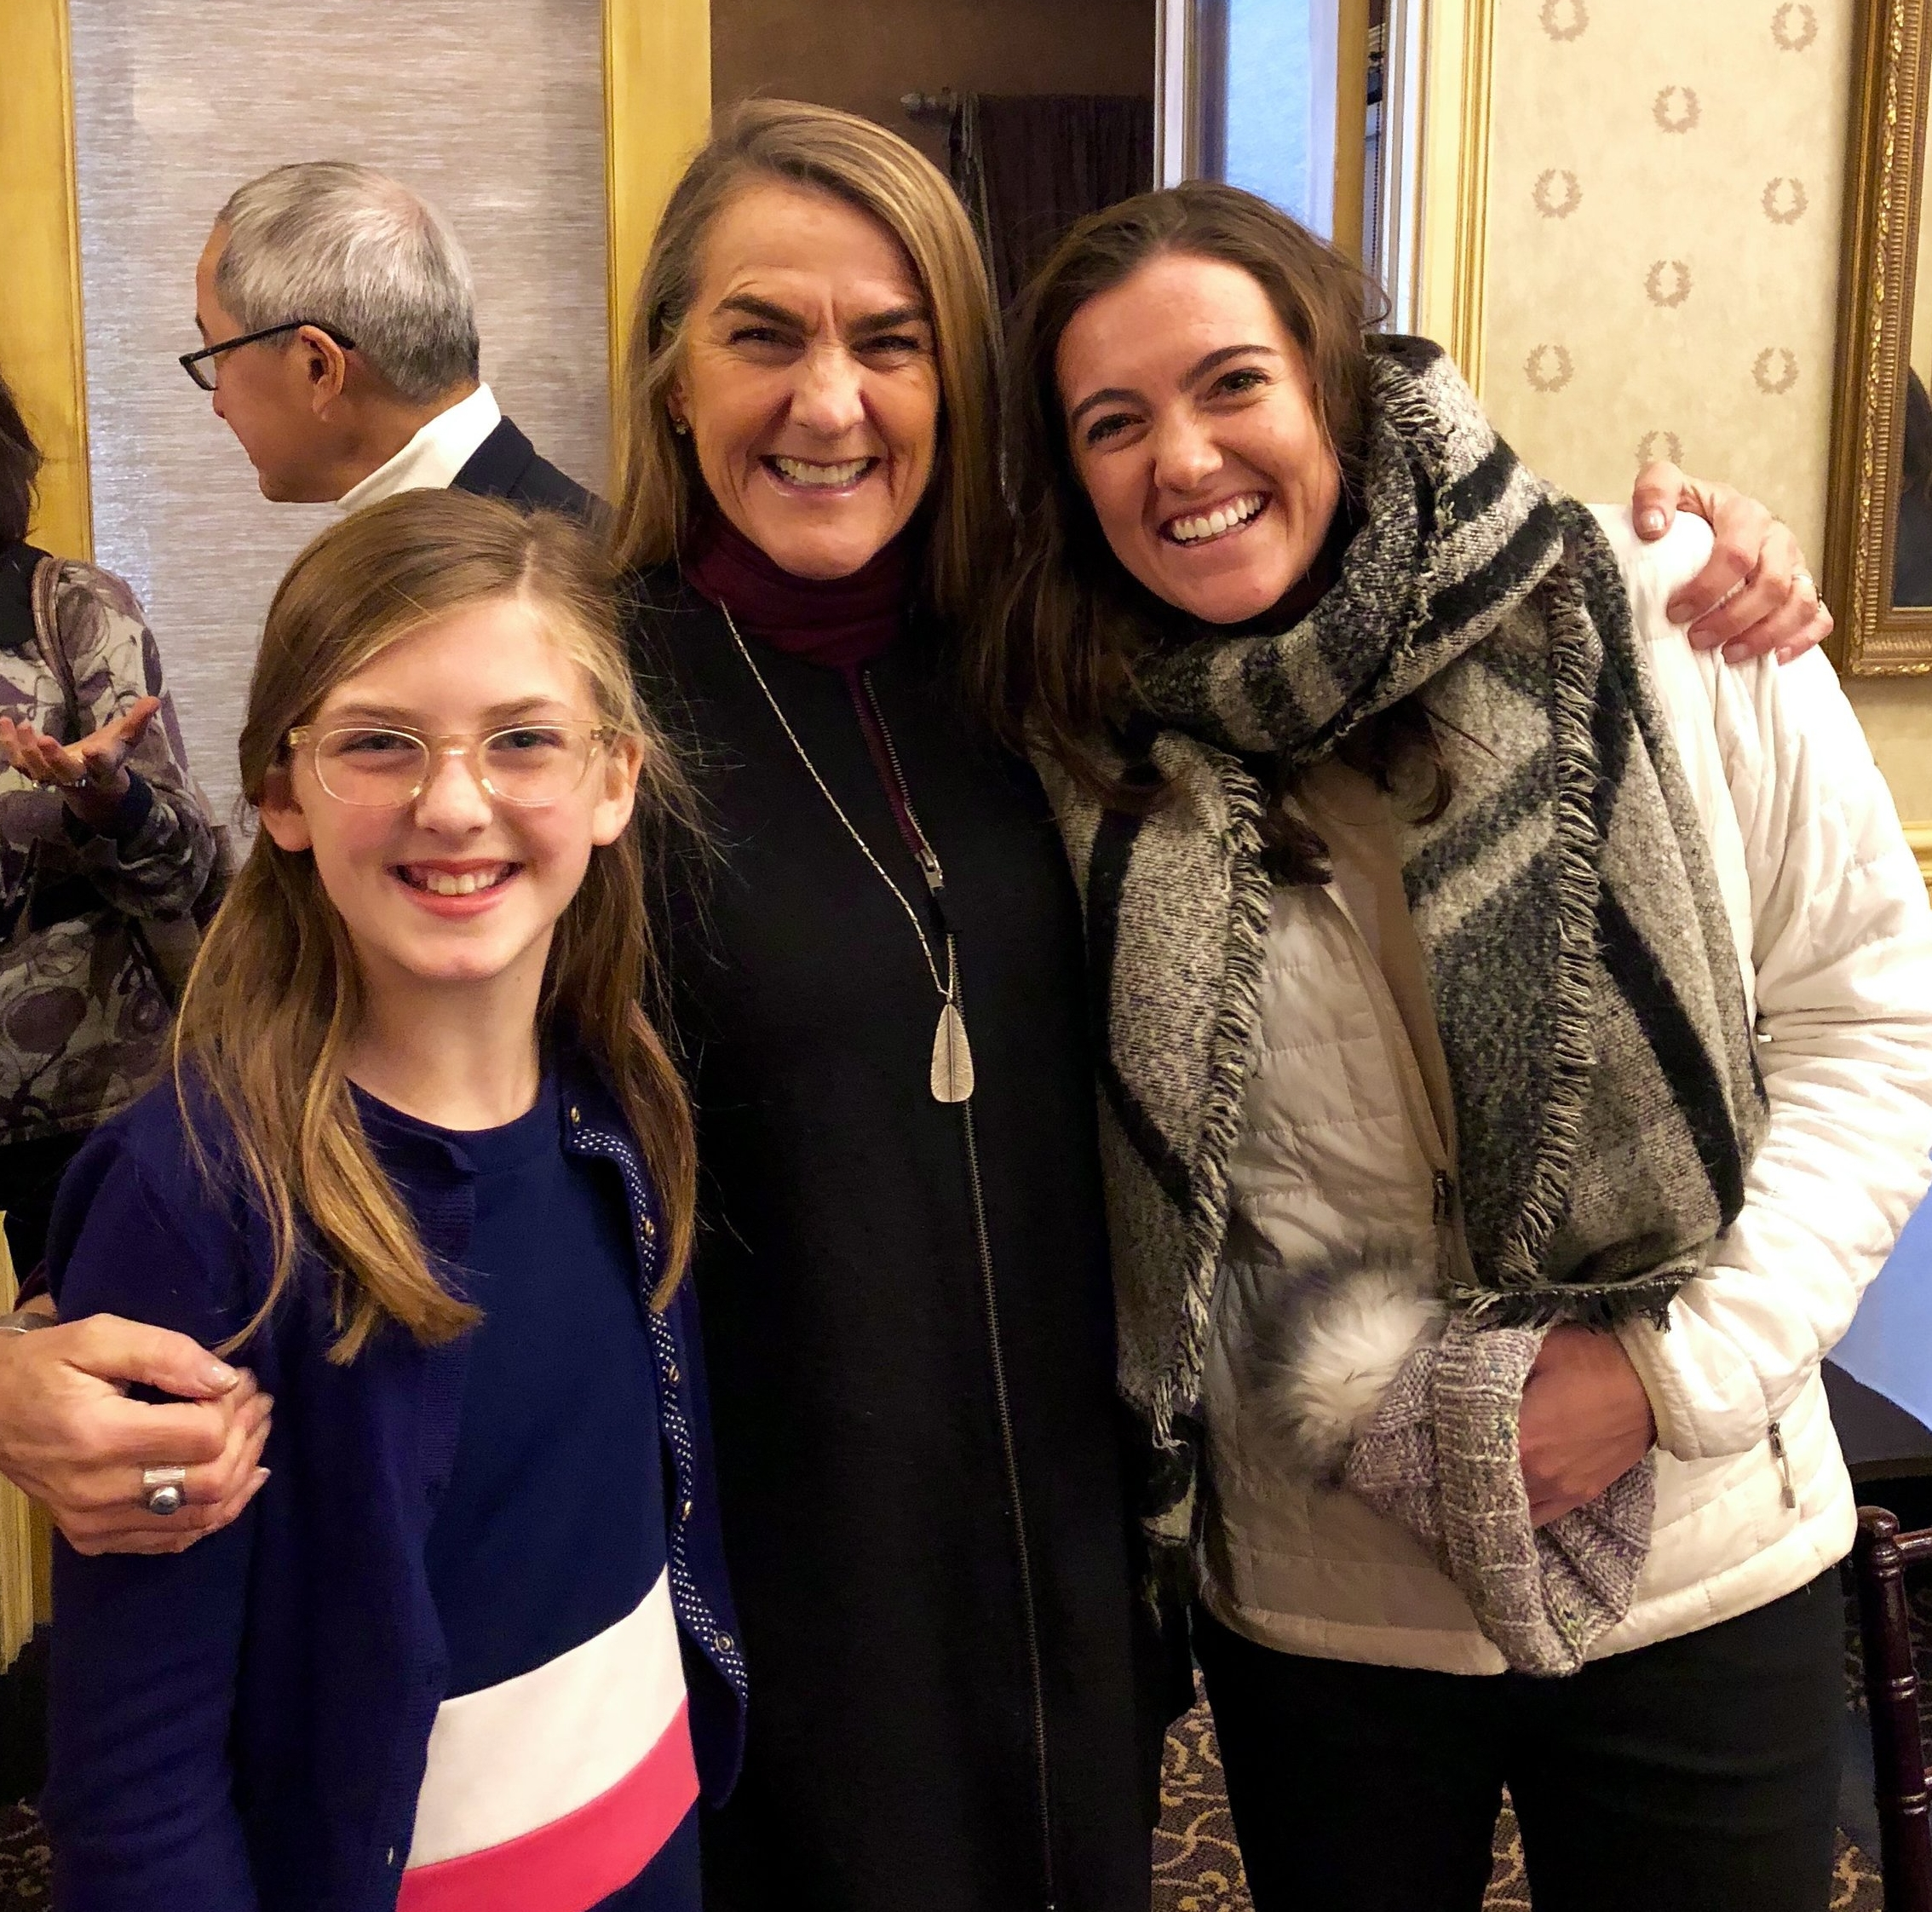 A not-so-little Grace with my friend Ainsley and her mom (a church lady!) - the Hanna Anderson originals!